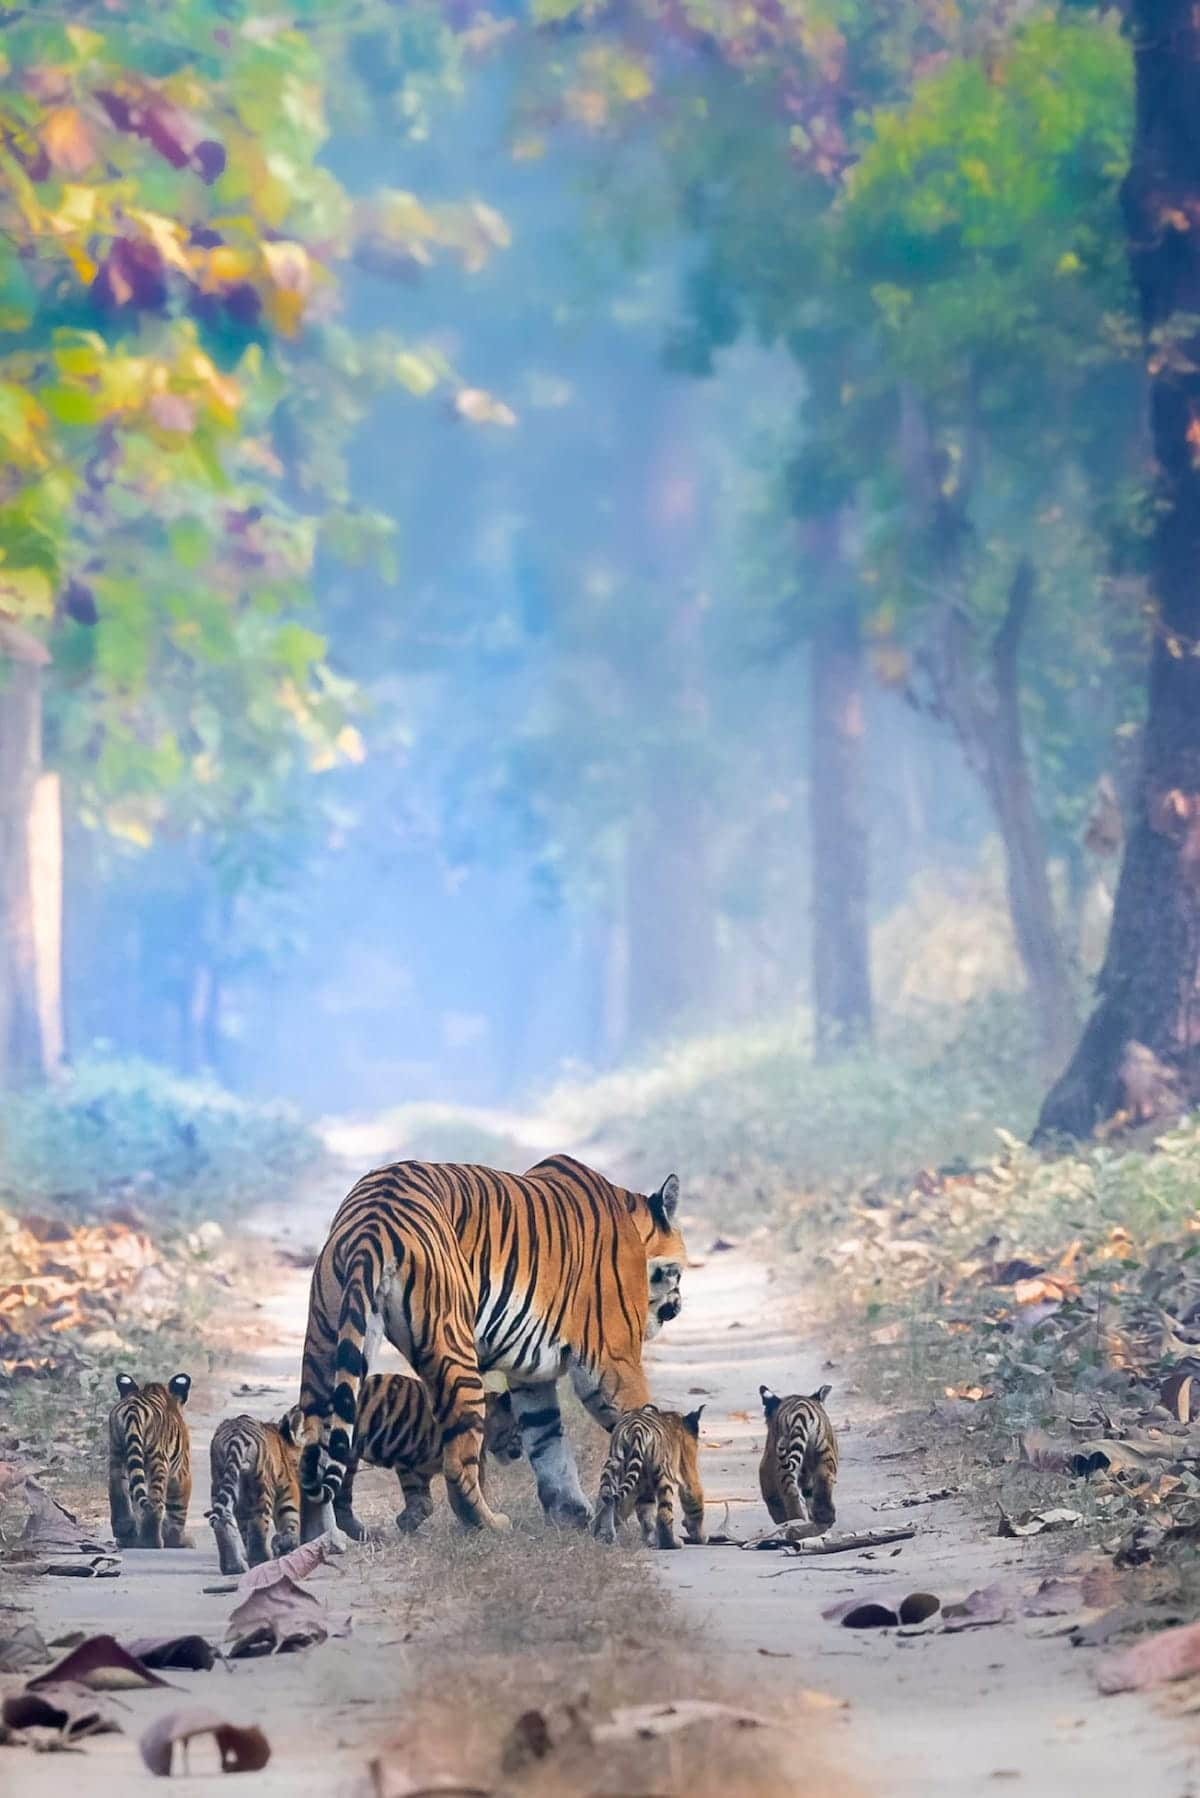 Tigress and Cubs in India at Dudhwa National Park